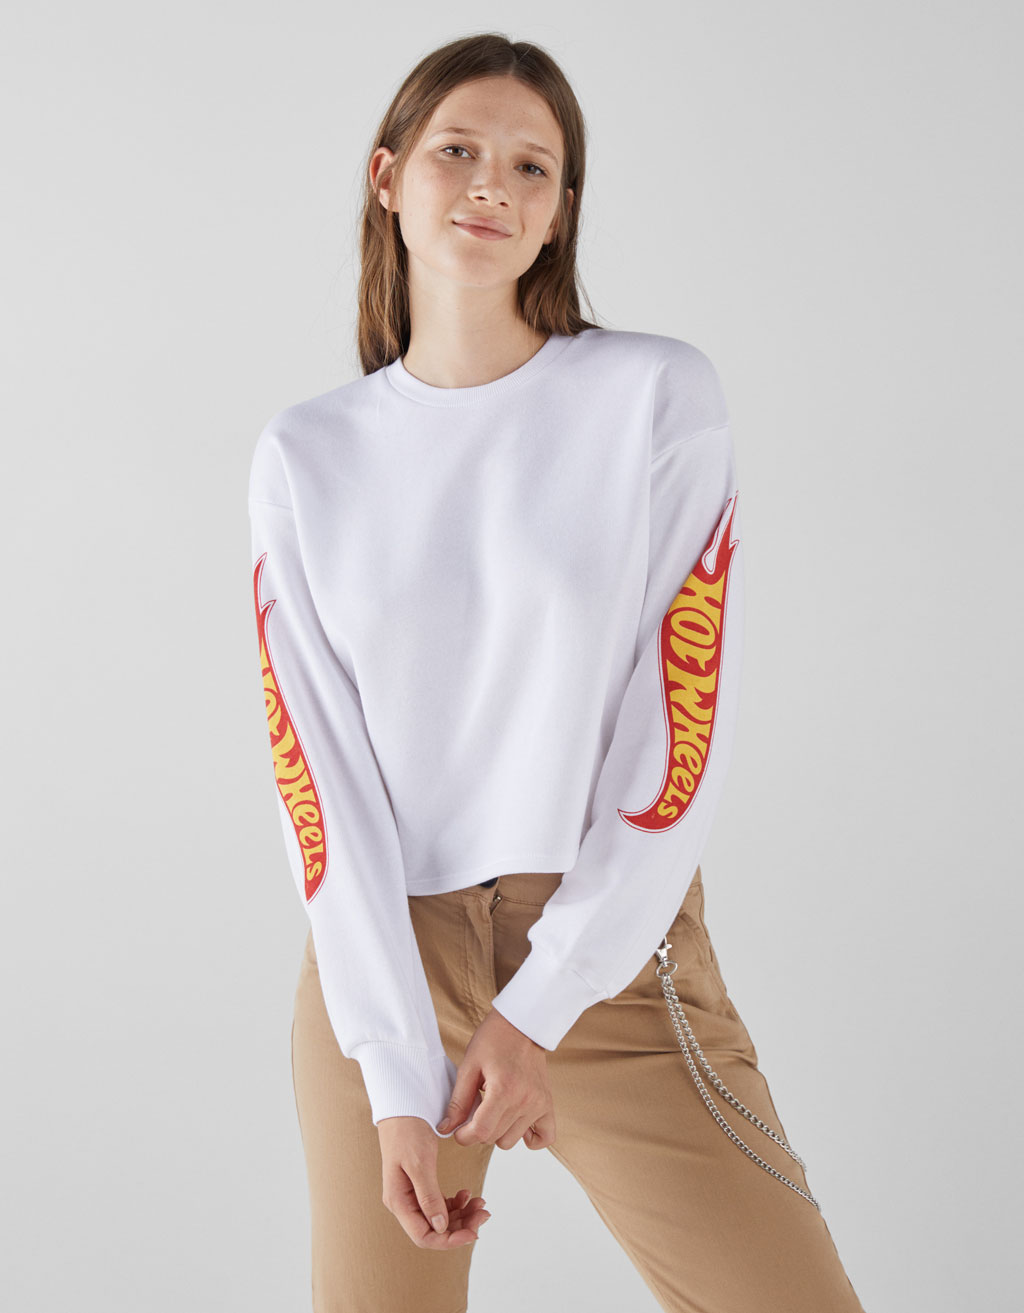 Sweatshirt Hot Wheels